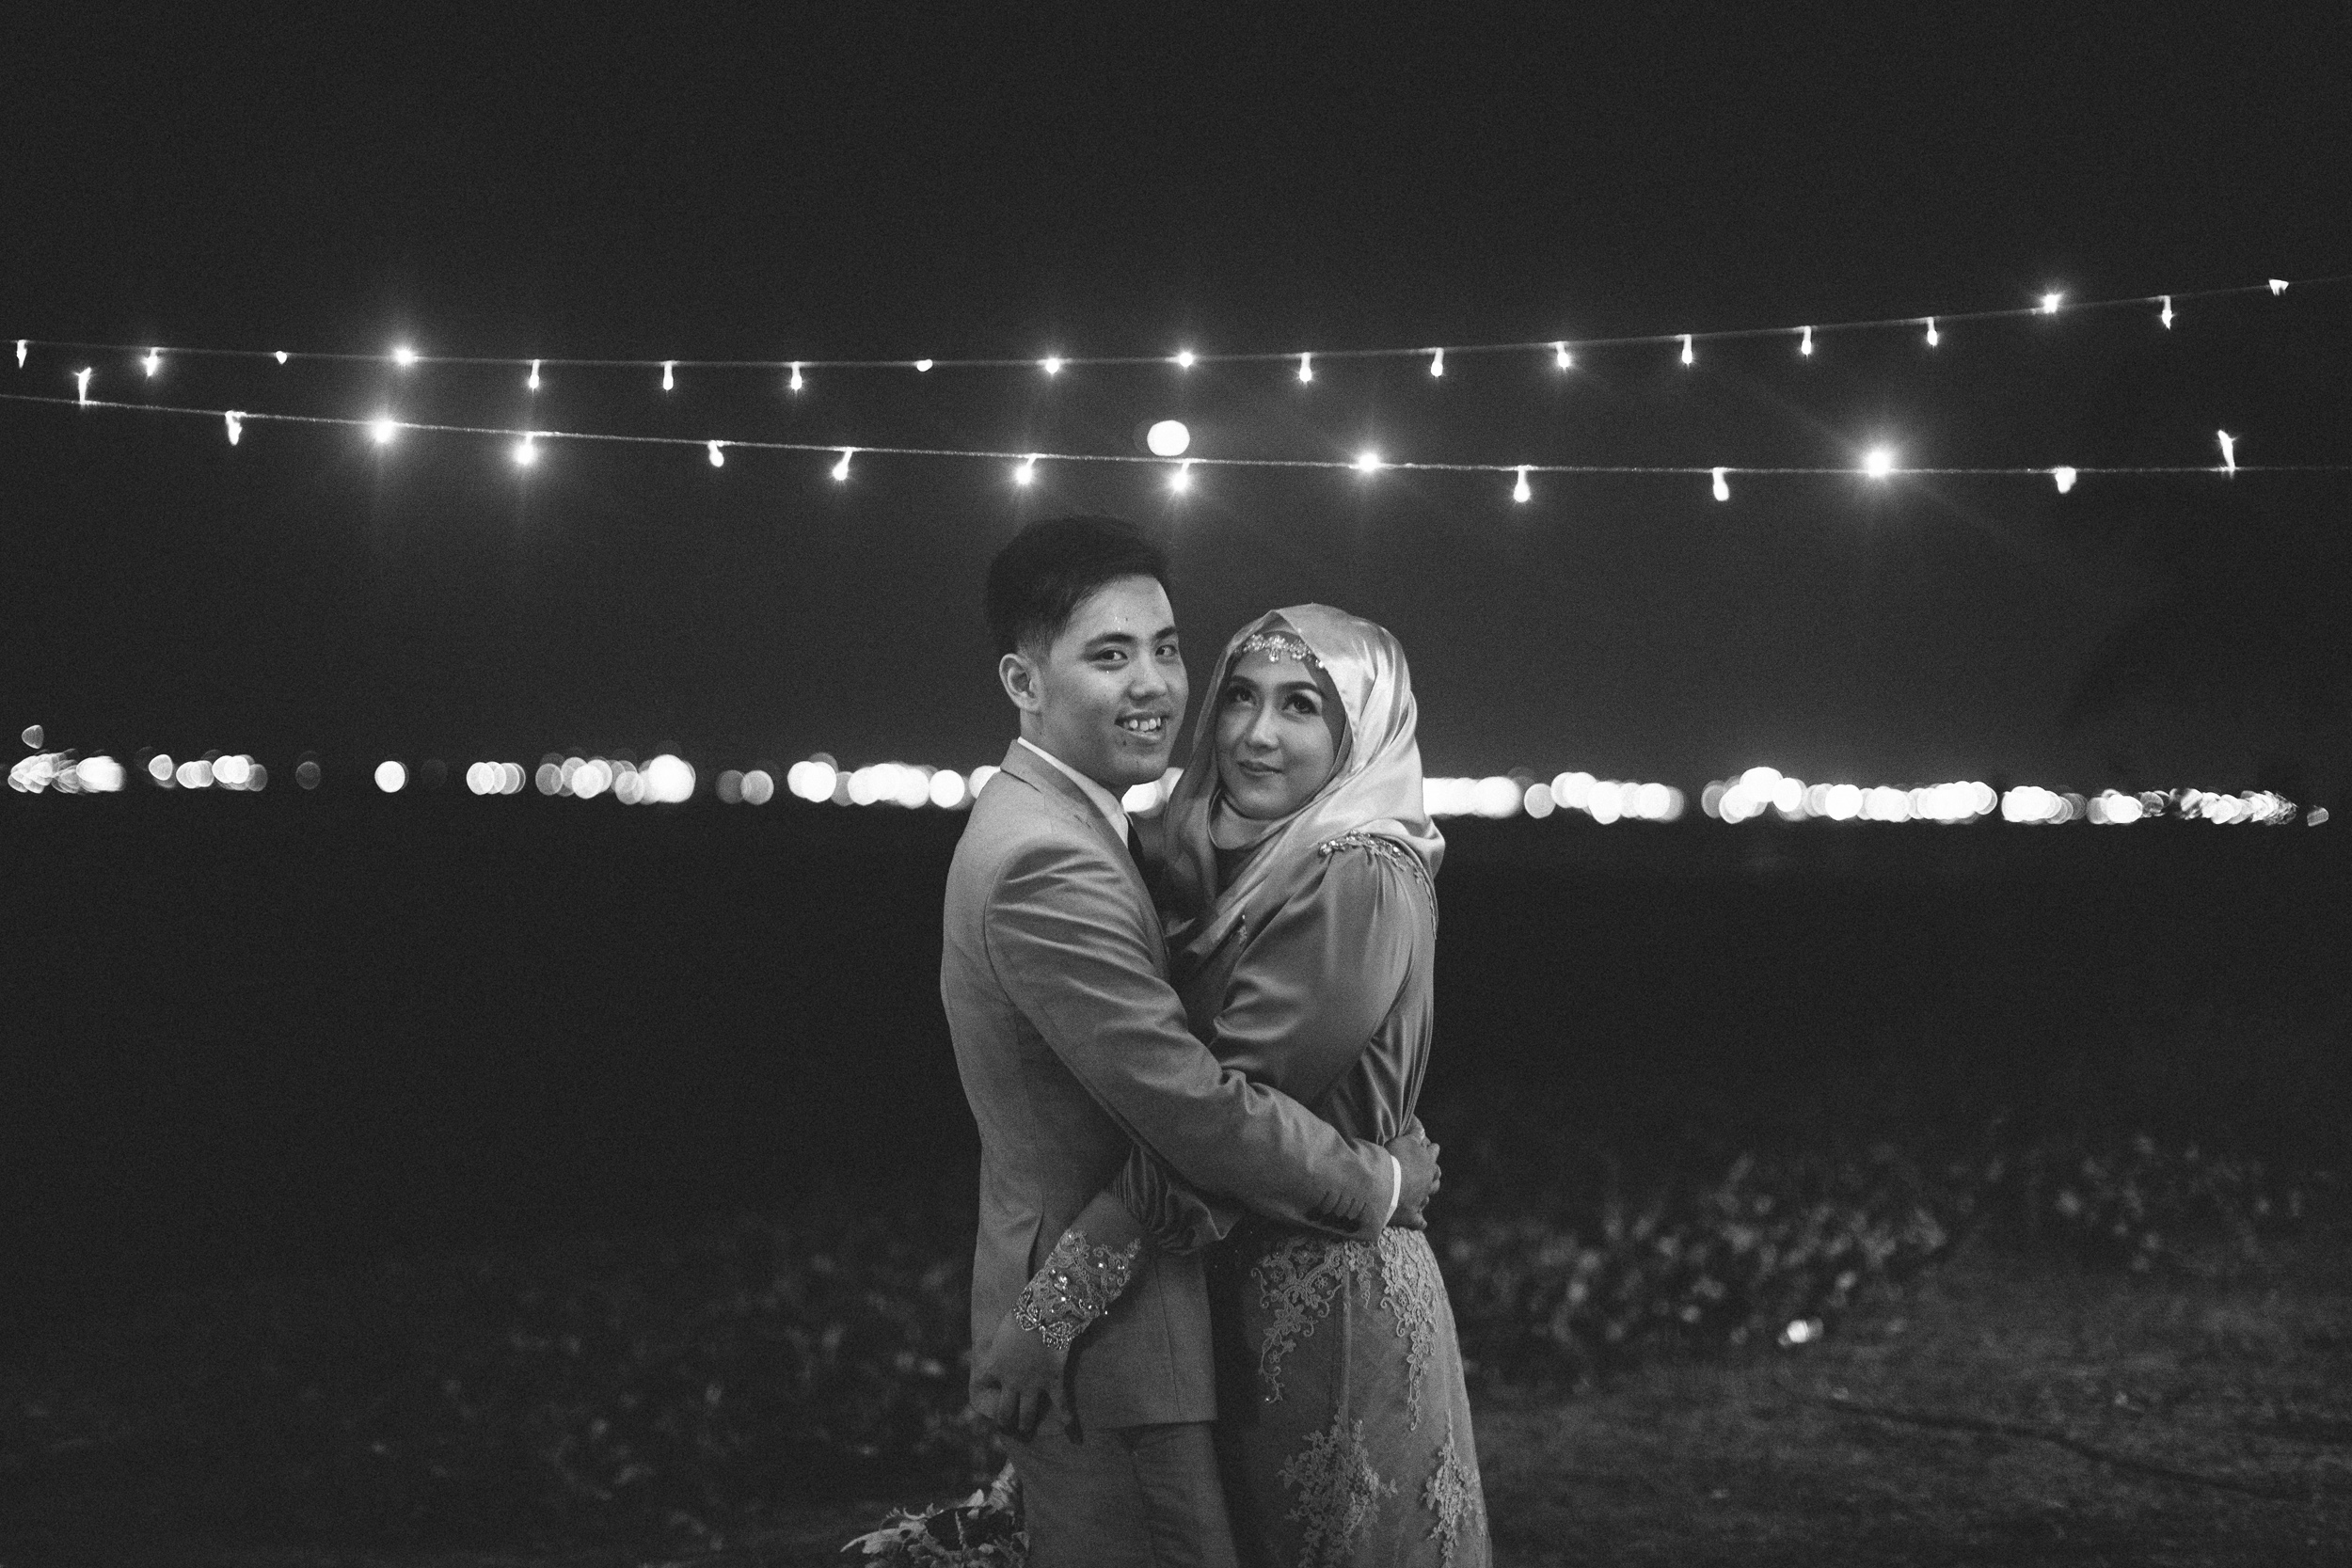 singapore-wedding-photographer-wemadethese-aisyah-helmi-84.jpg